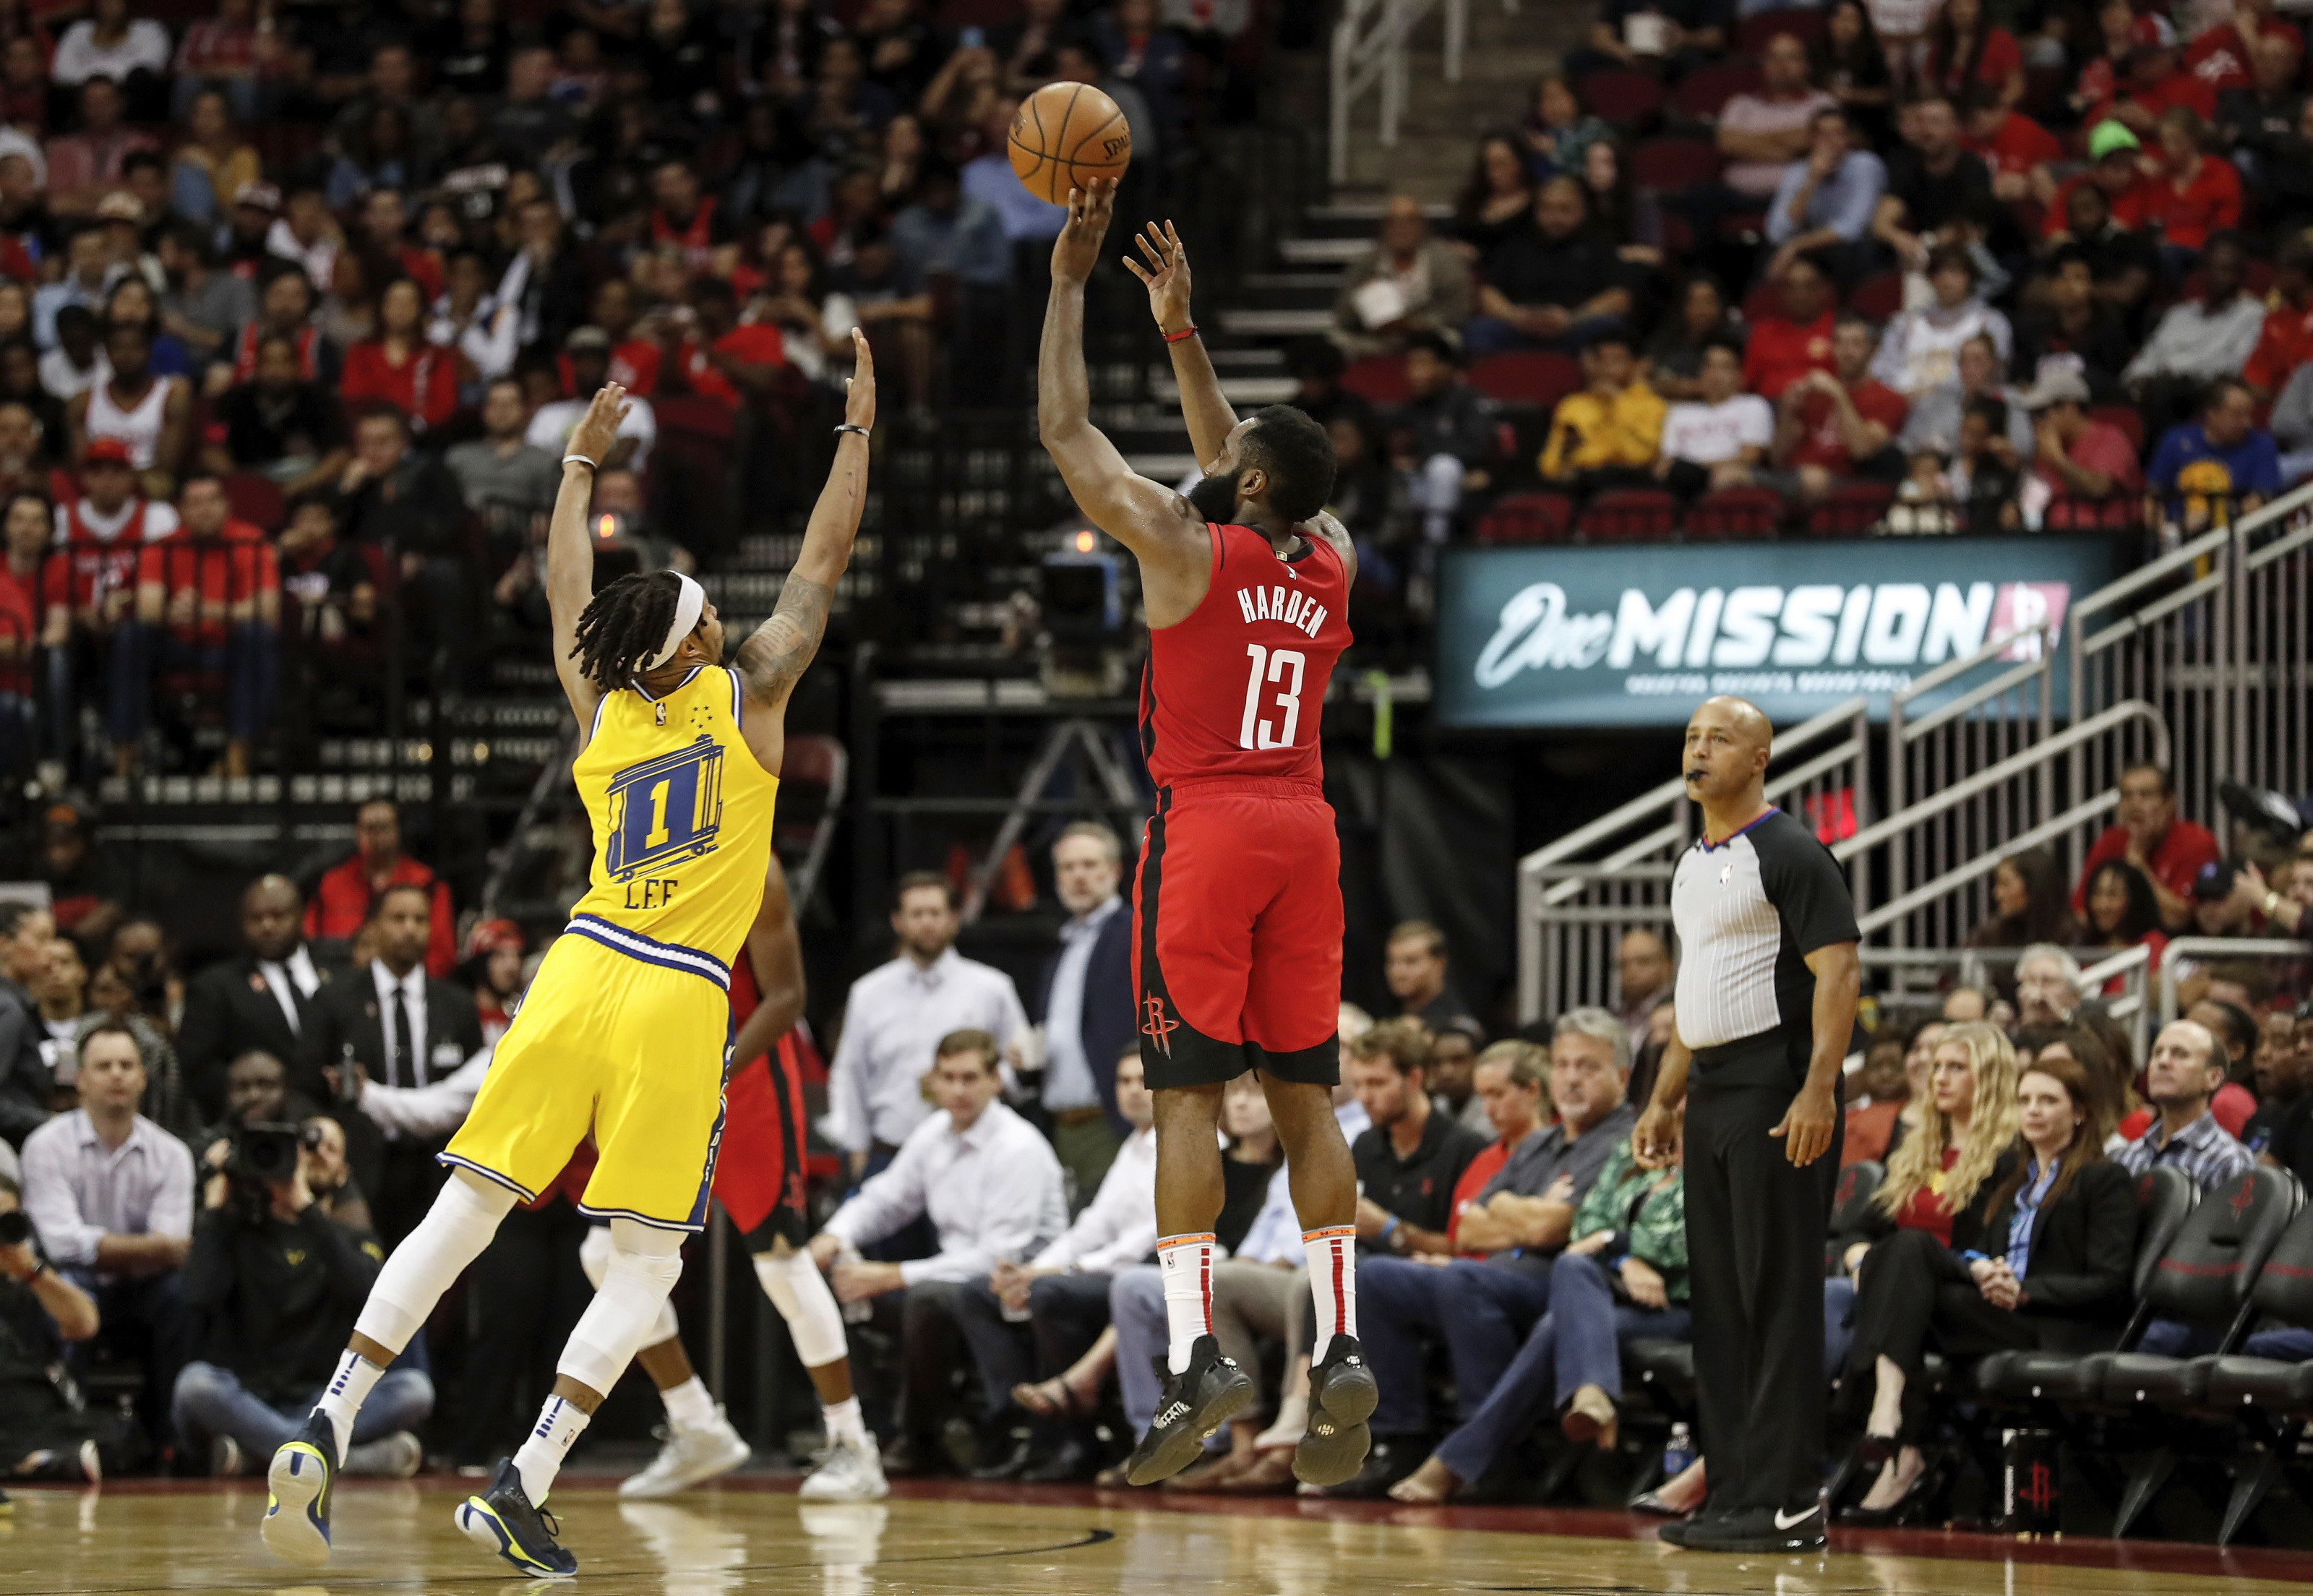 Houston Rockets: James Harden has shot his way into Top 5 all-time